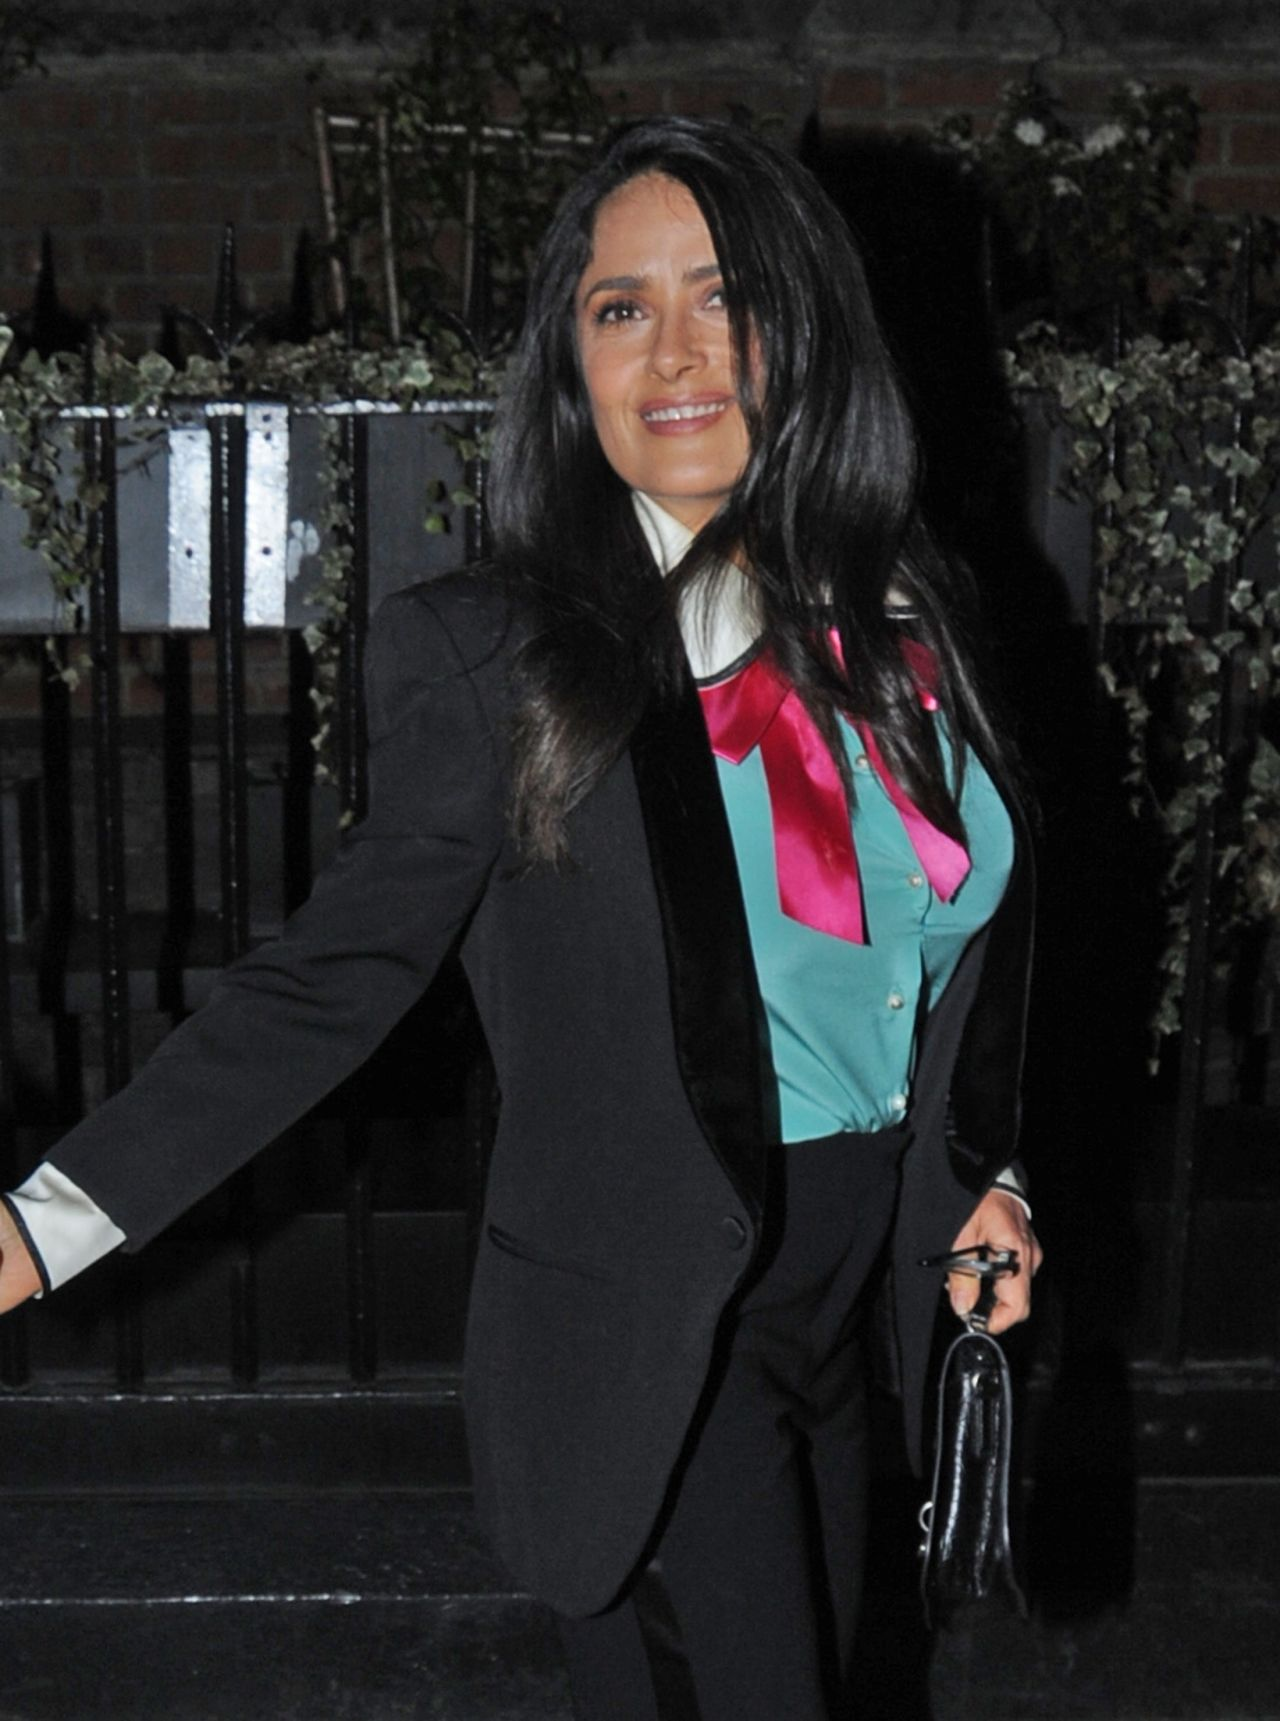 http://celebmafia.com/wp-content/uploads/2018/03/salma-hayek-chiltern-firehouse-in-london-03-20-2018-4.jpg